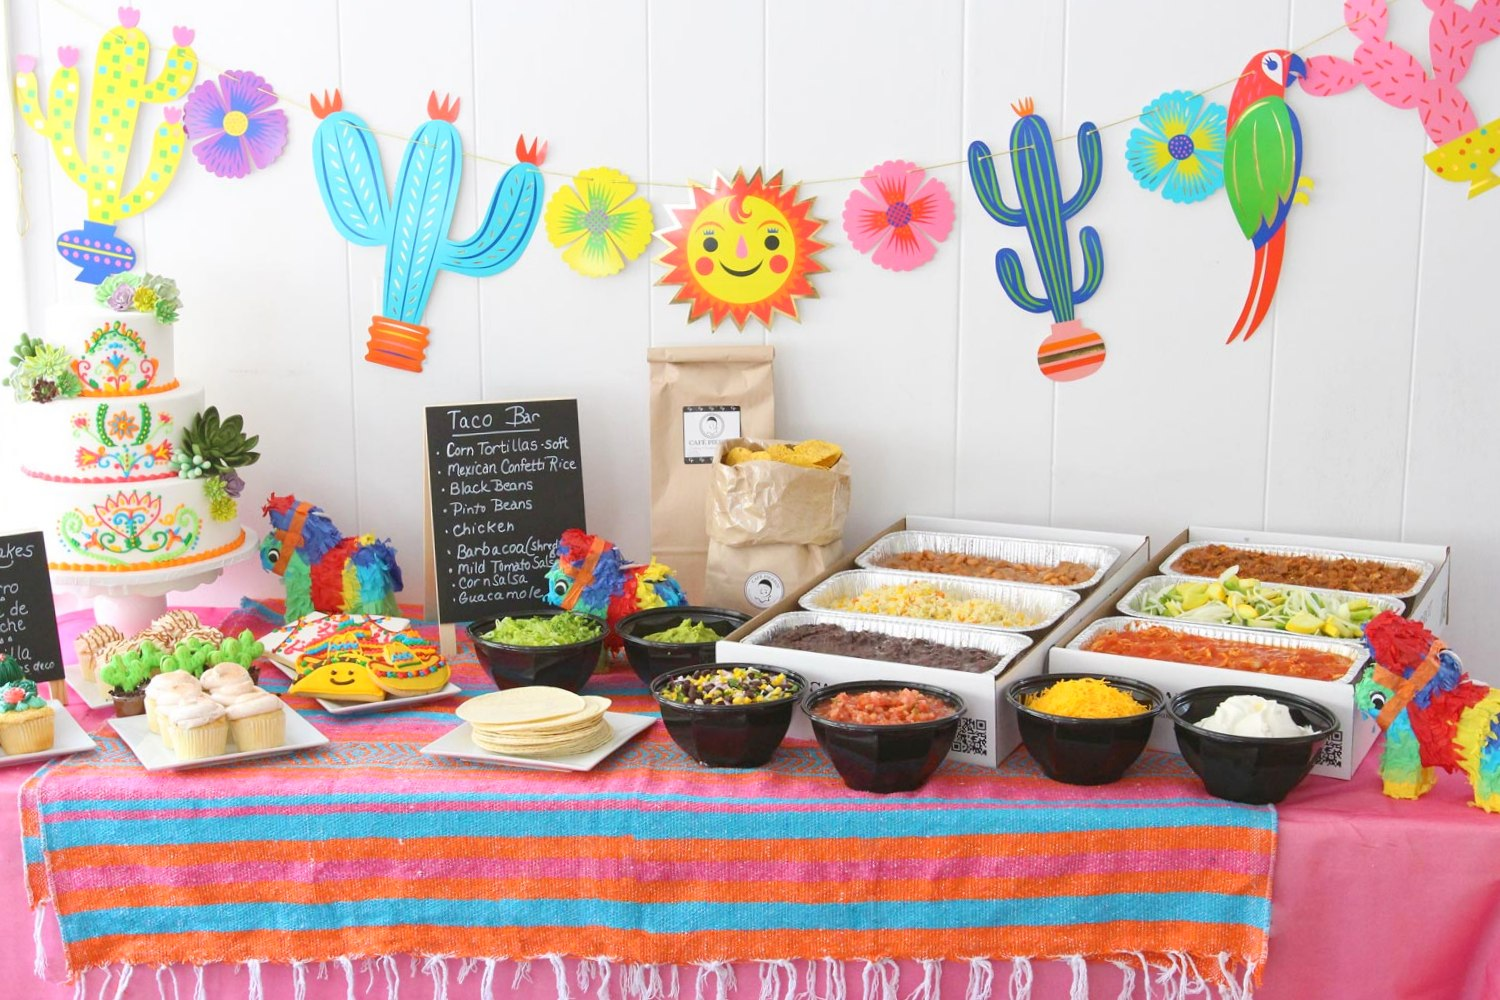 Cinco de Mayo Catering menu with taco bar options & Mexican Catering Menu (gluten free!) - Pierrot Catering u0026 Events